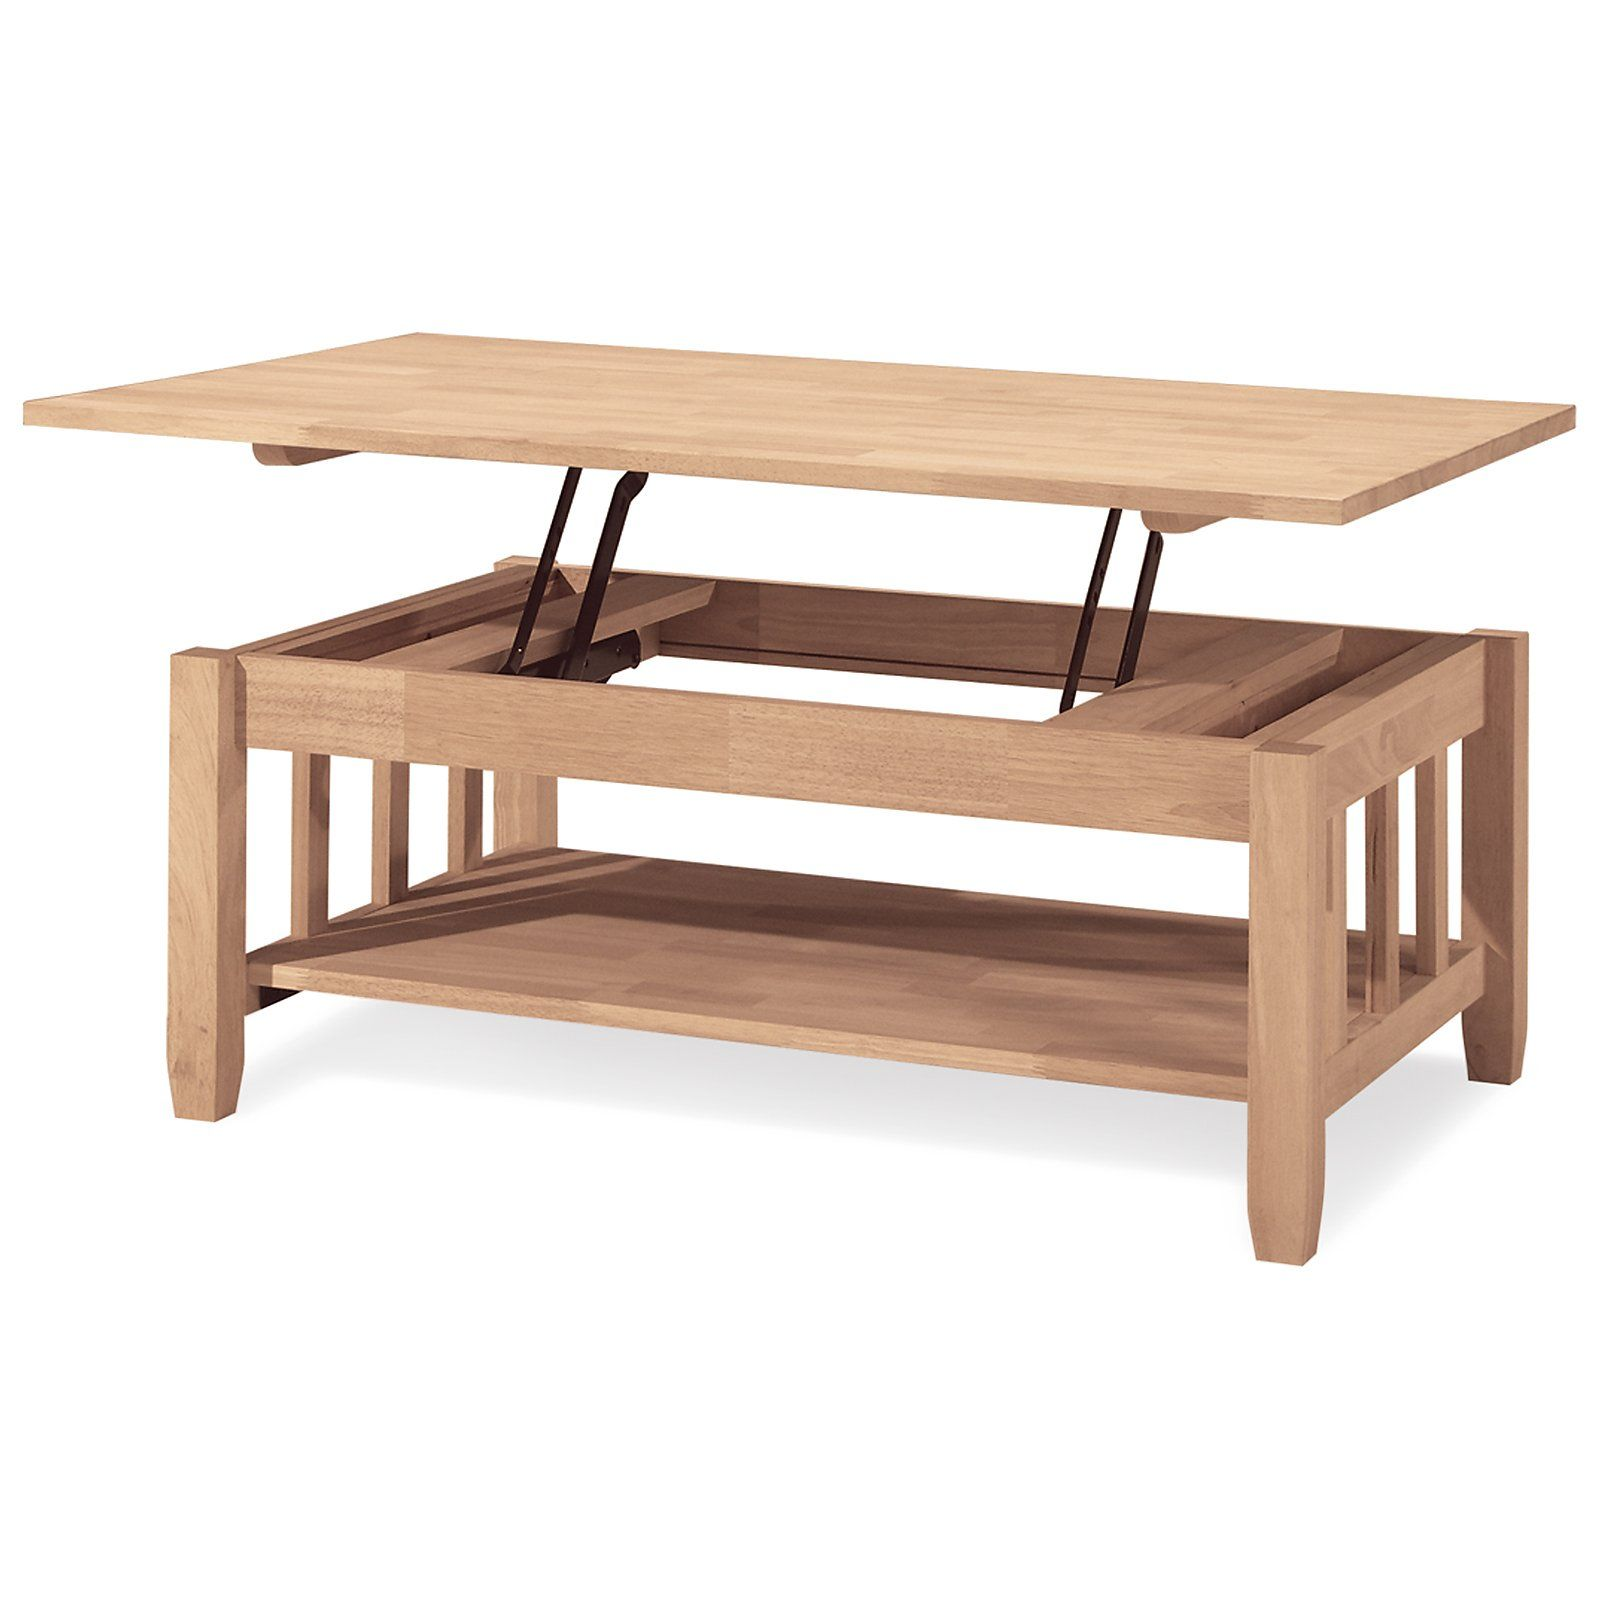 International Concepts Mission Solid Wood Lift Top Coffee Table Tall Coffee Table Hardwood Coffee Tables Coffee Table [ 1600 x 1600 Pixel ]